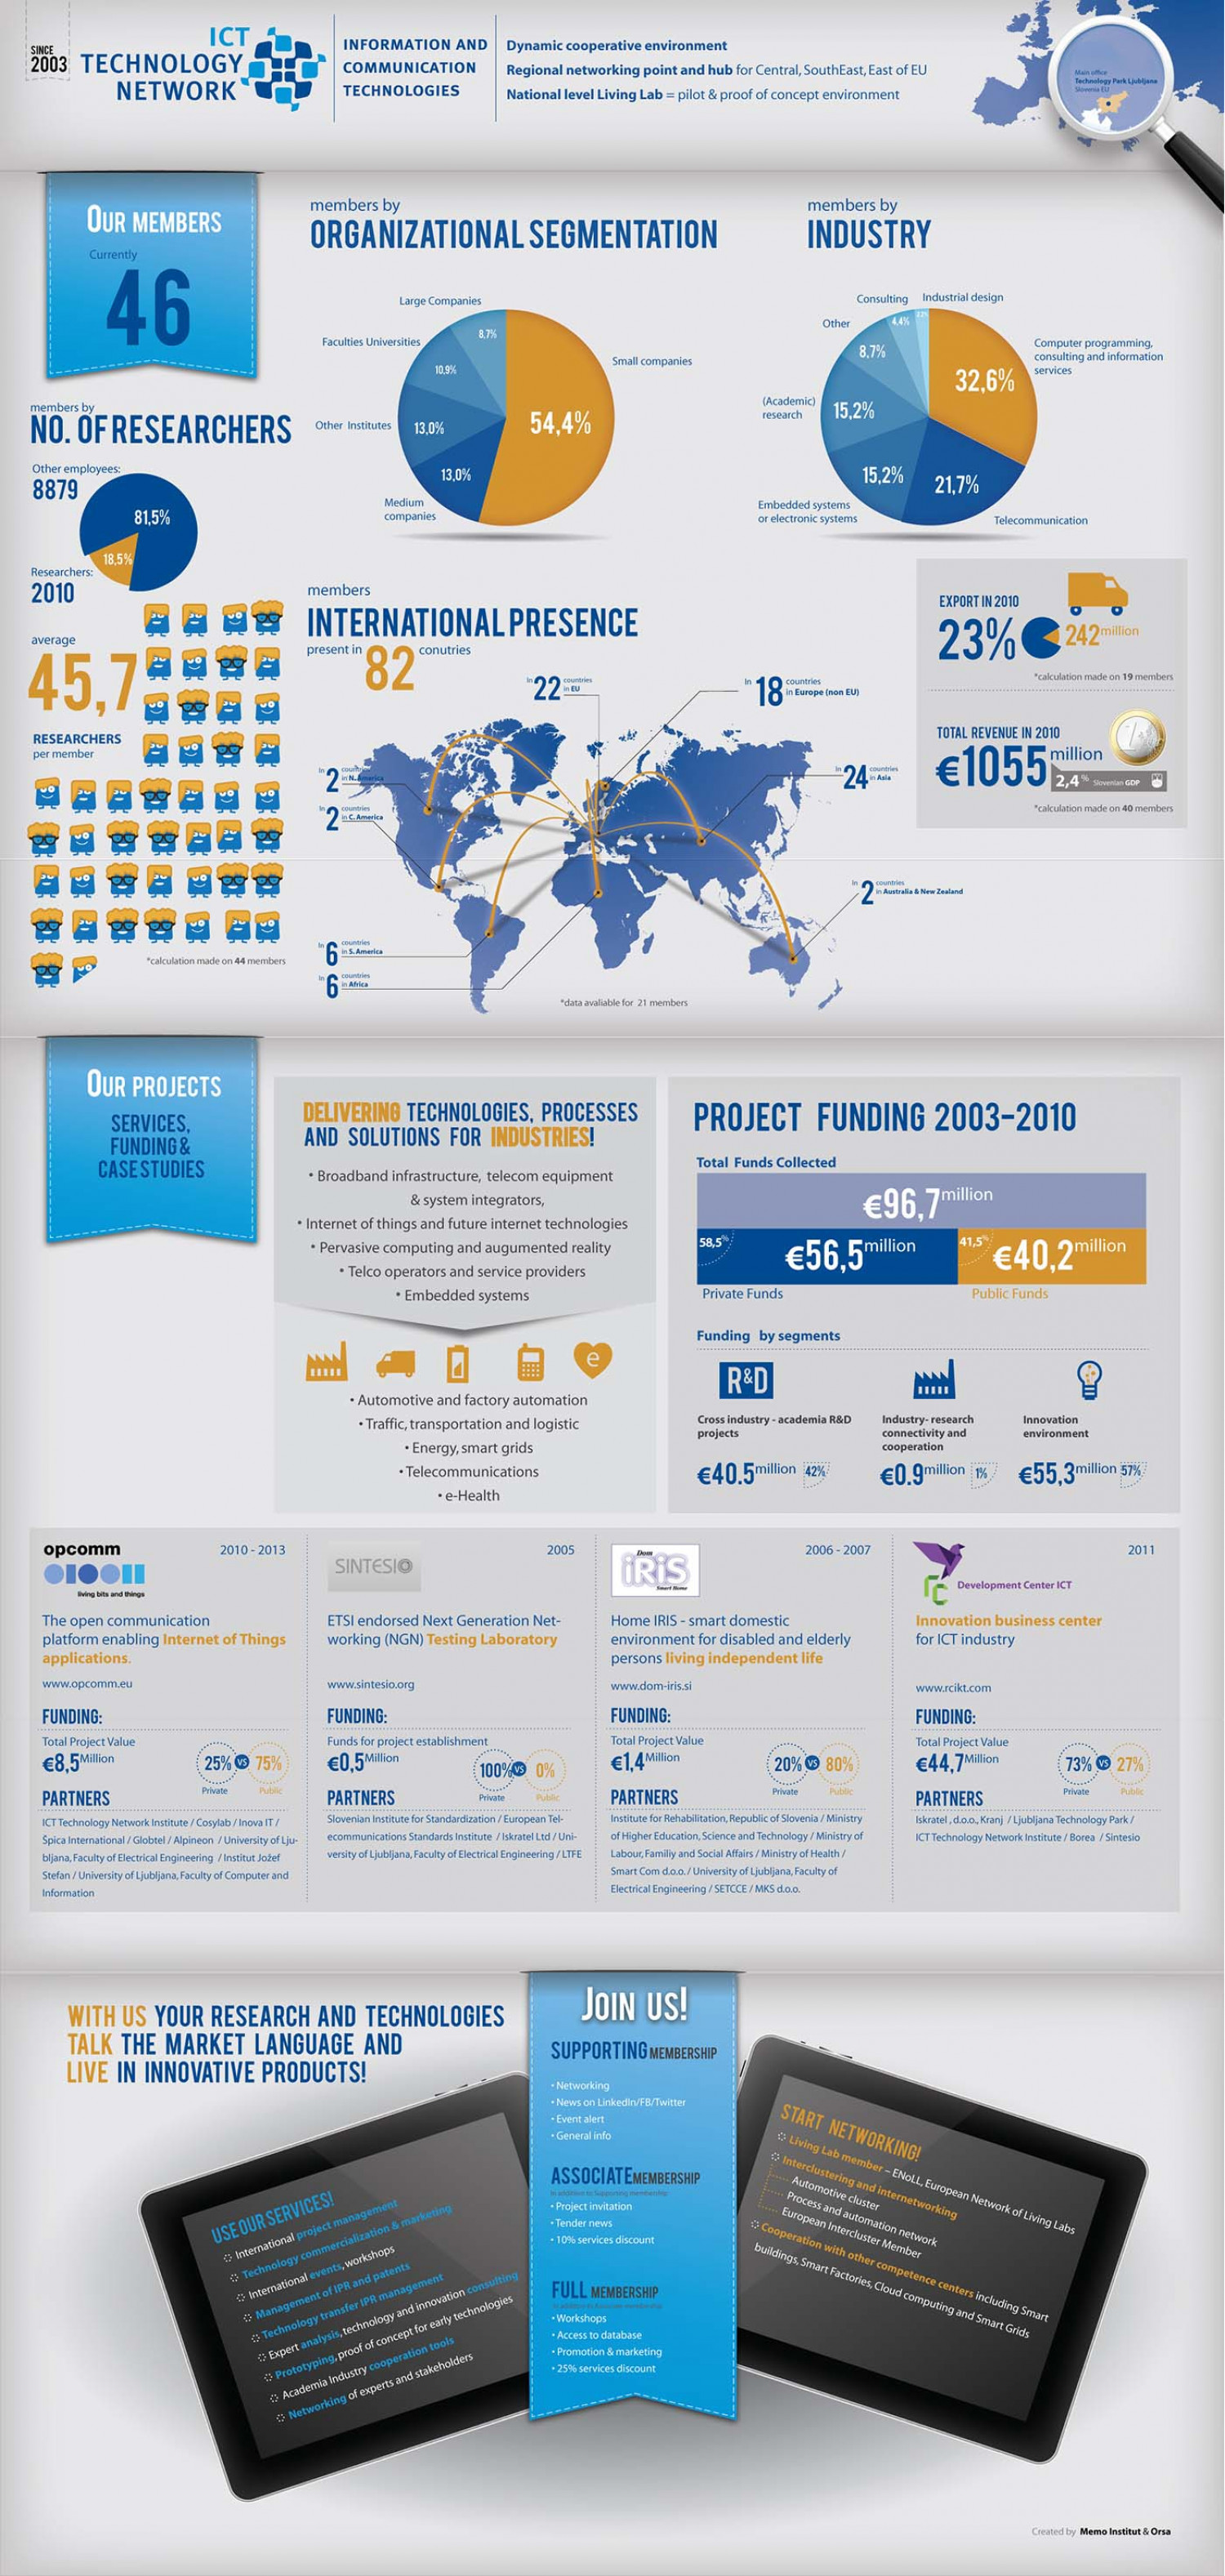 Ict Network Infographic